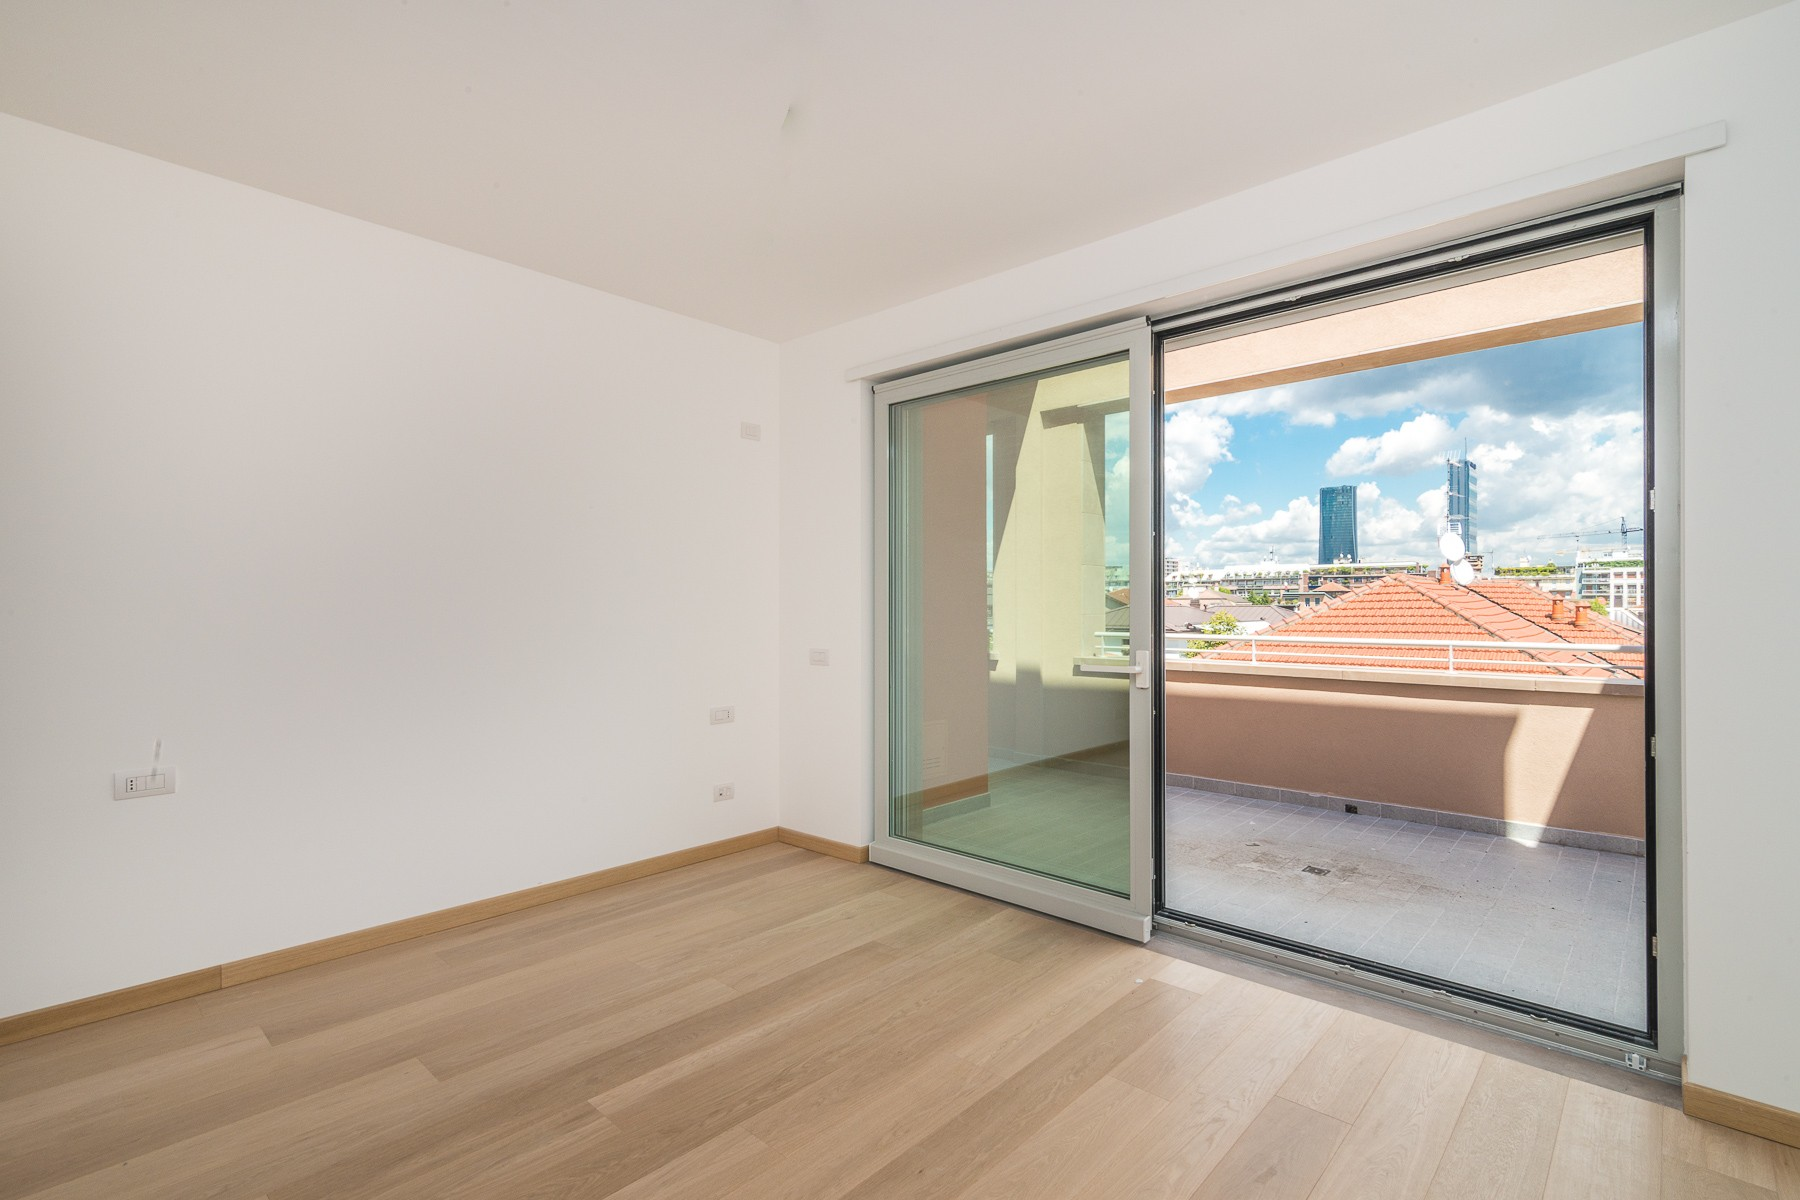 Additional photo for property listing at Exquisite apartment in new construcion building Via Conconi Milano, Milan 20100 Italie